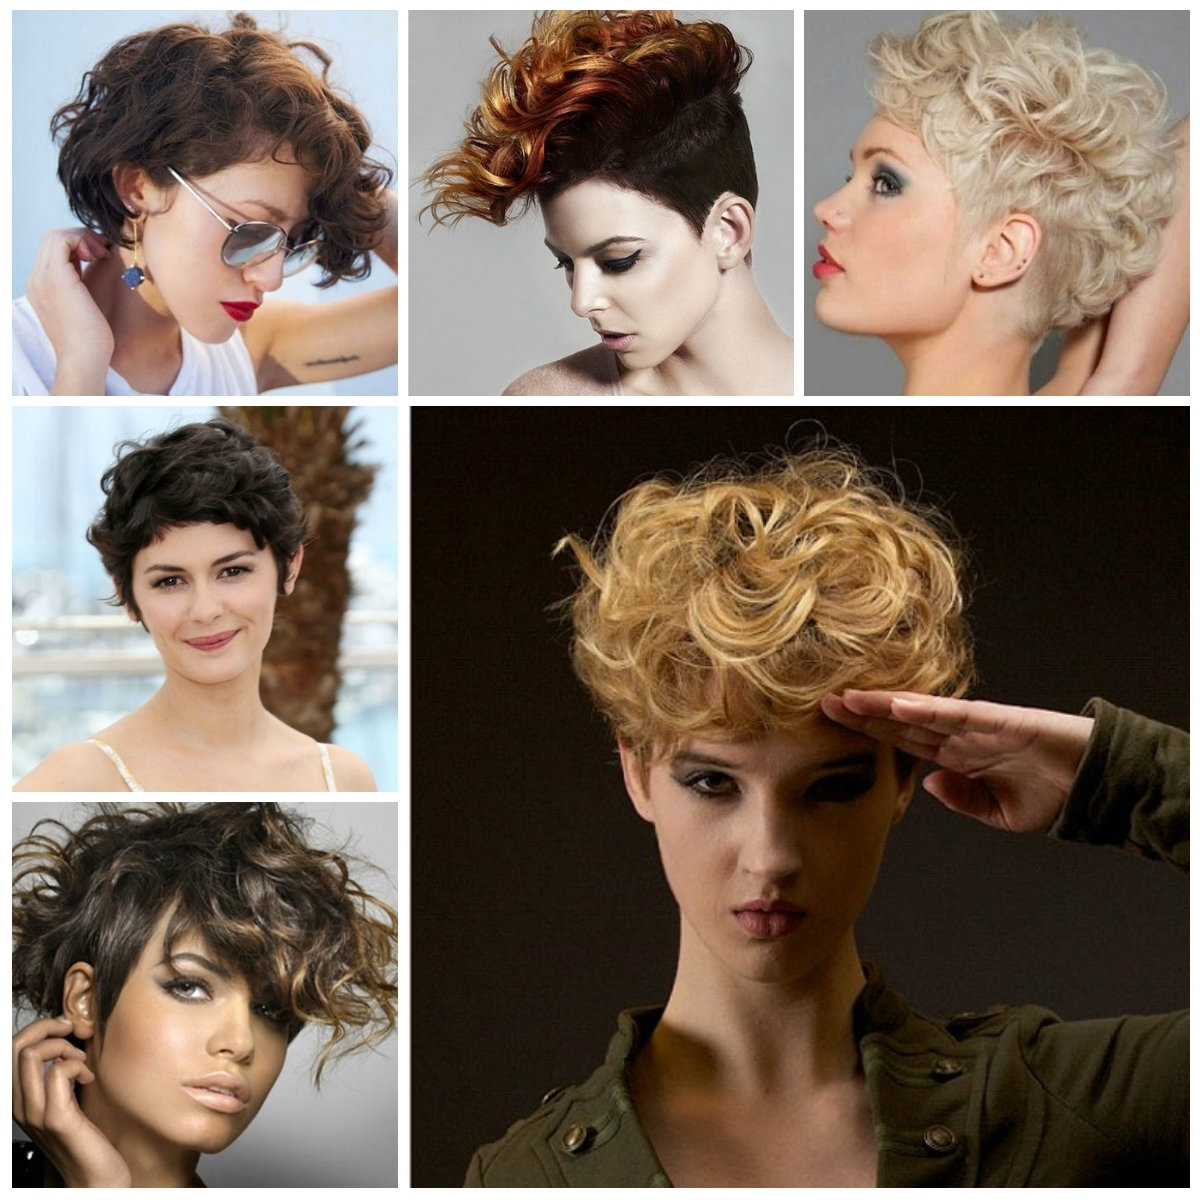 Hairstyles For Women 2019, Haircuts For Long Short For Most Up To Date Long Curly Pixie Hairstyles (View 11 of 20)